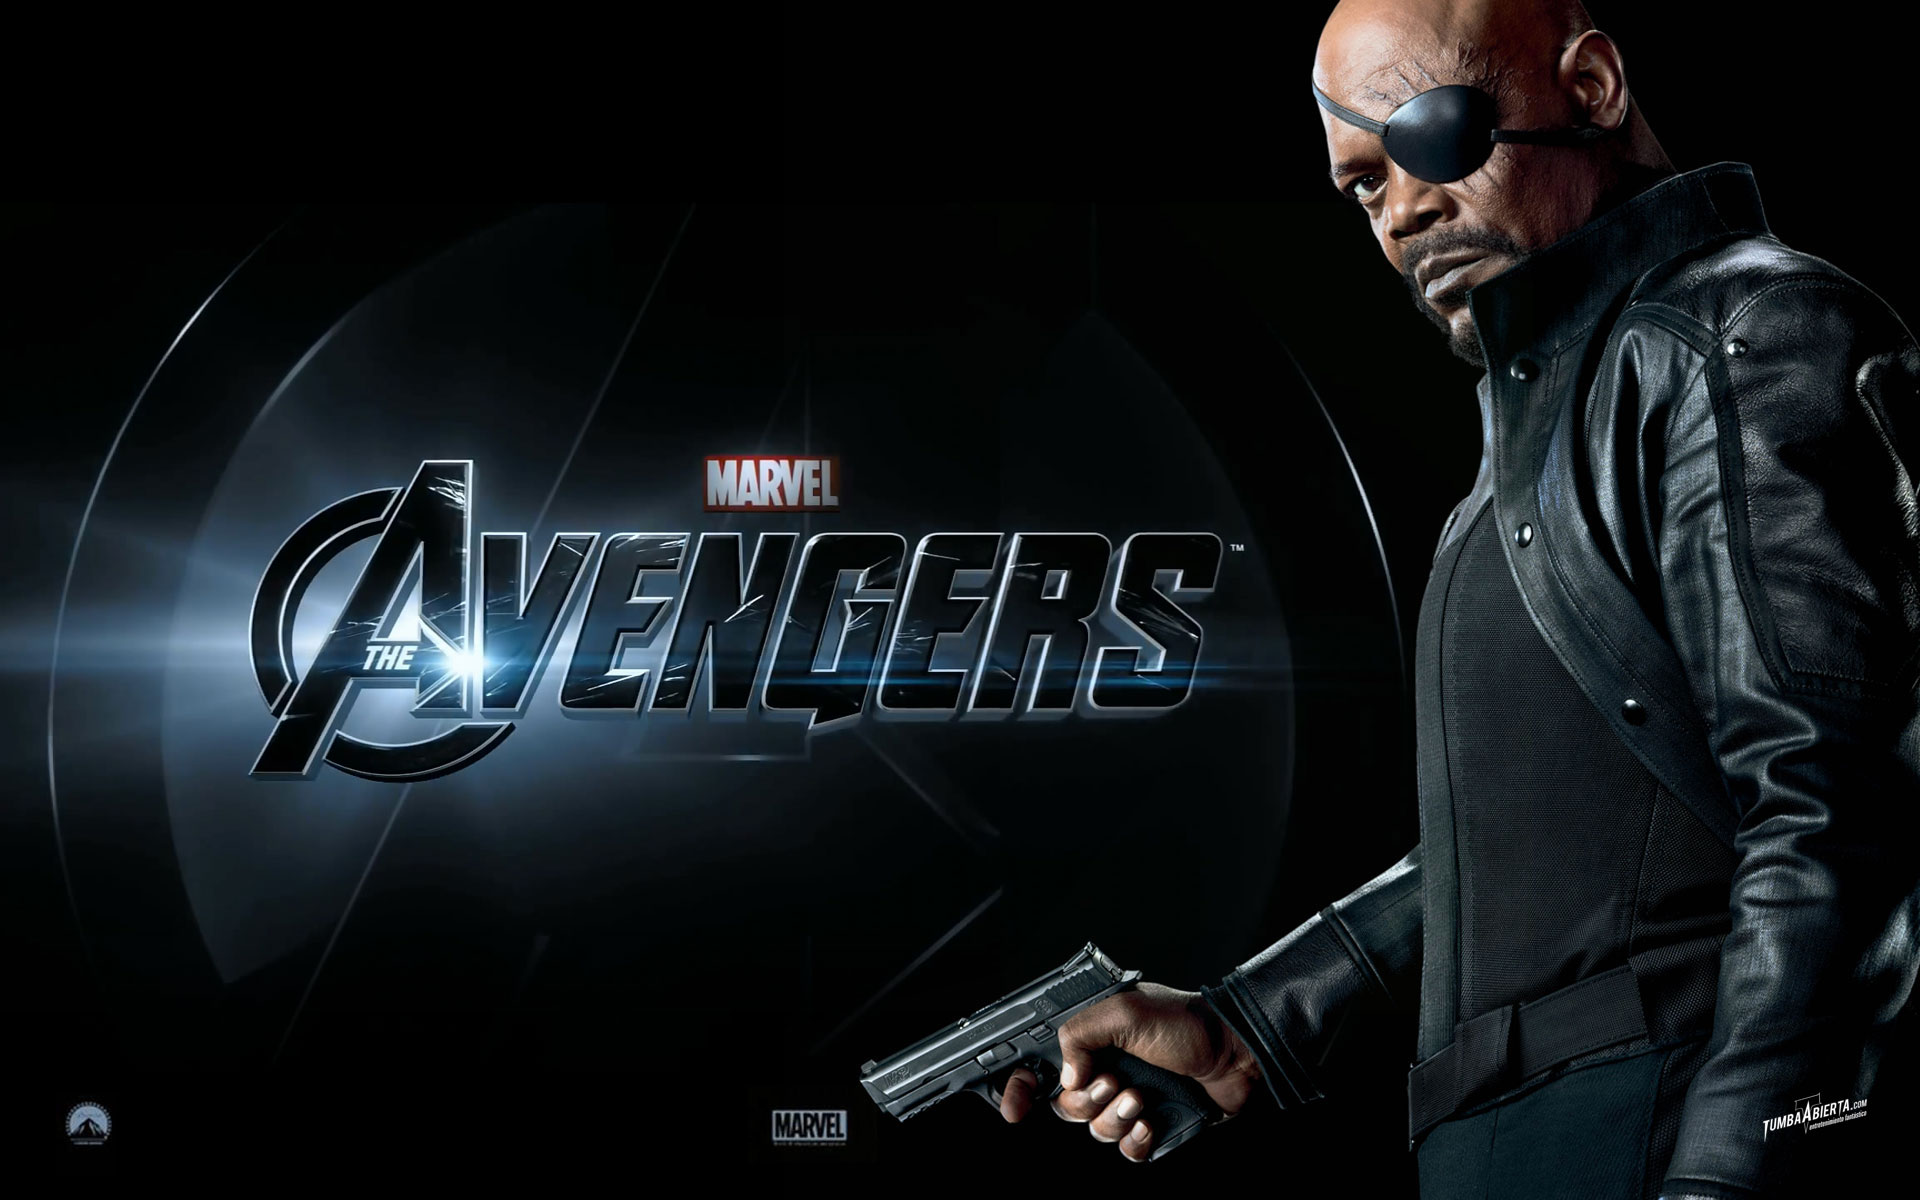 Wallpaper Marvel The Avengers Los Vengadores